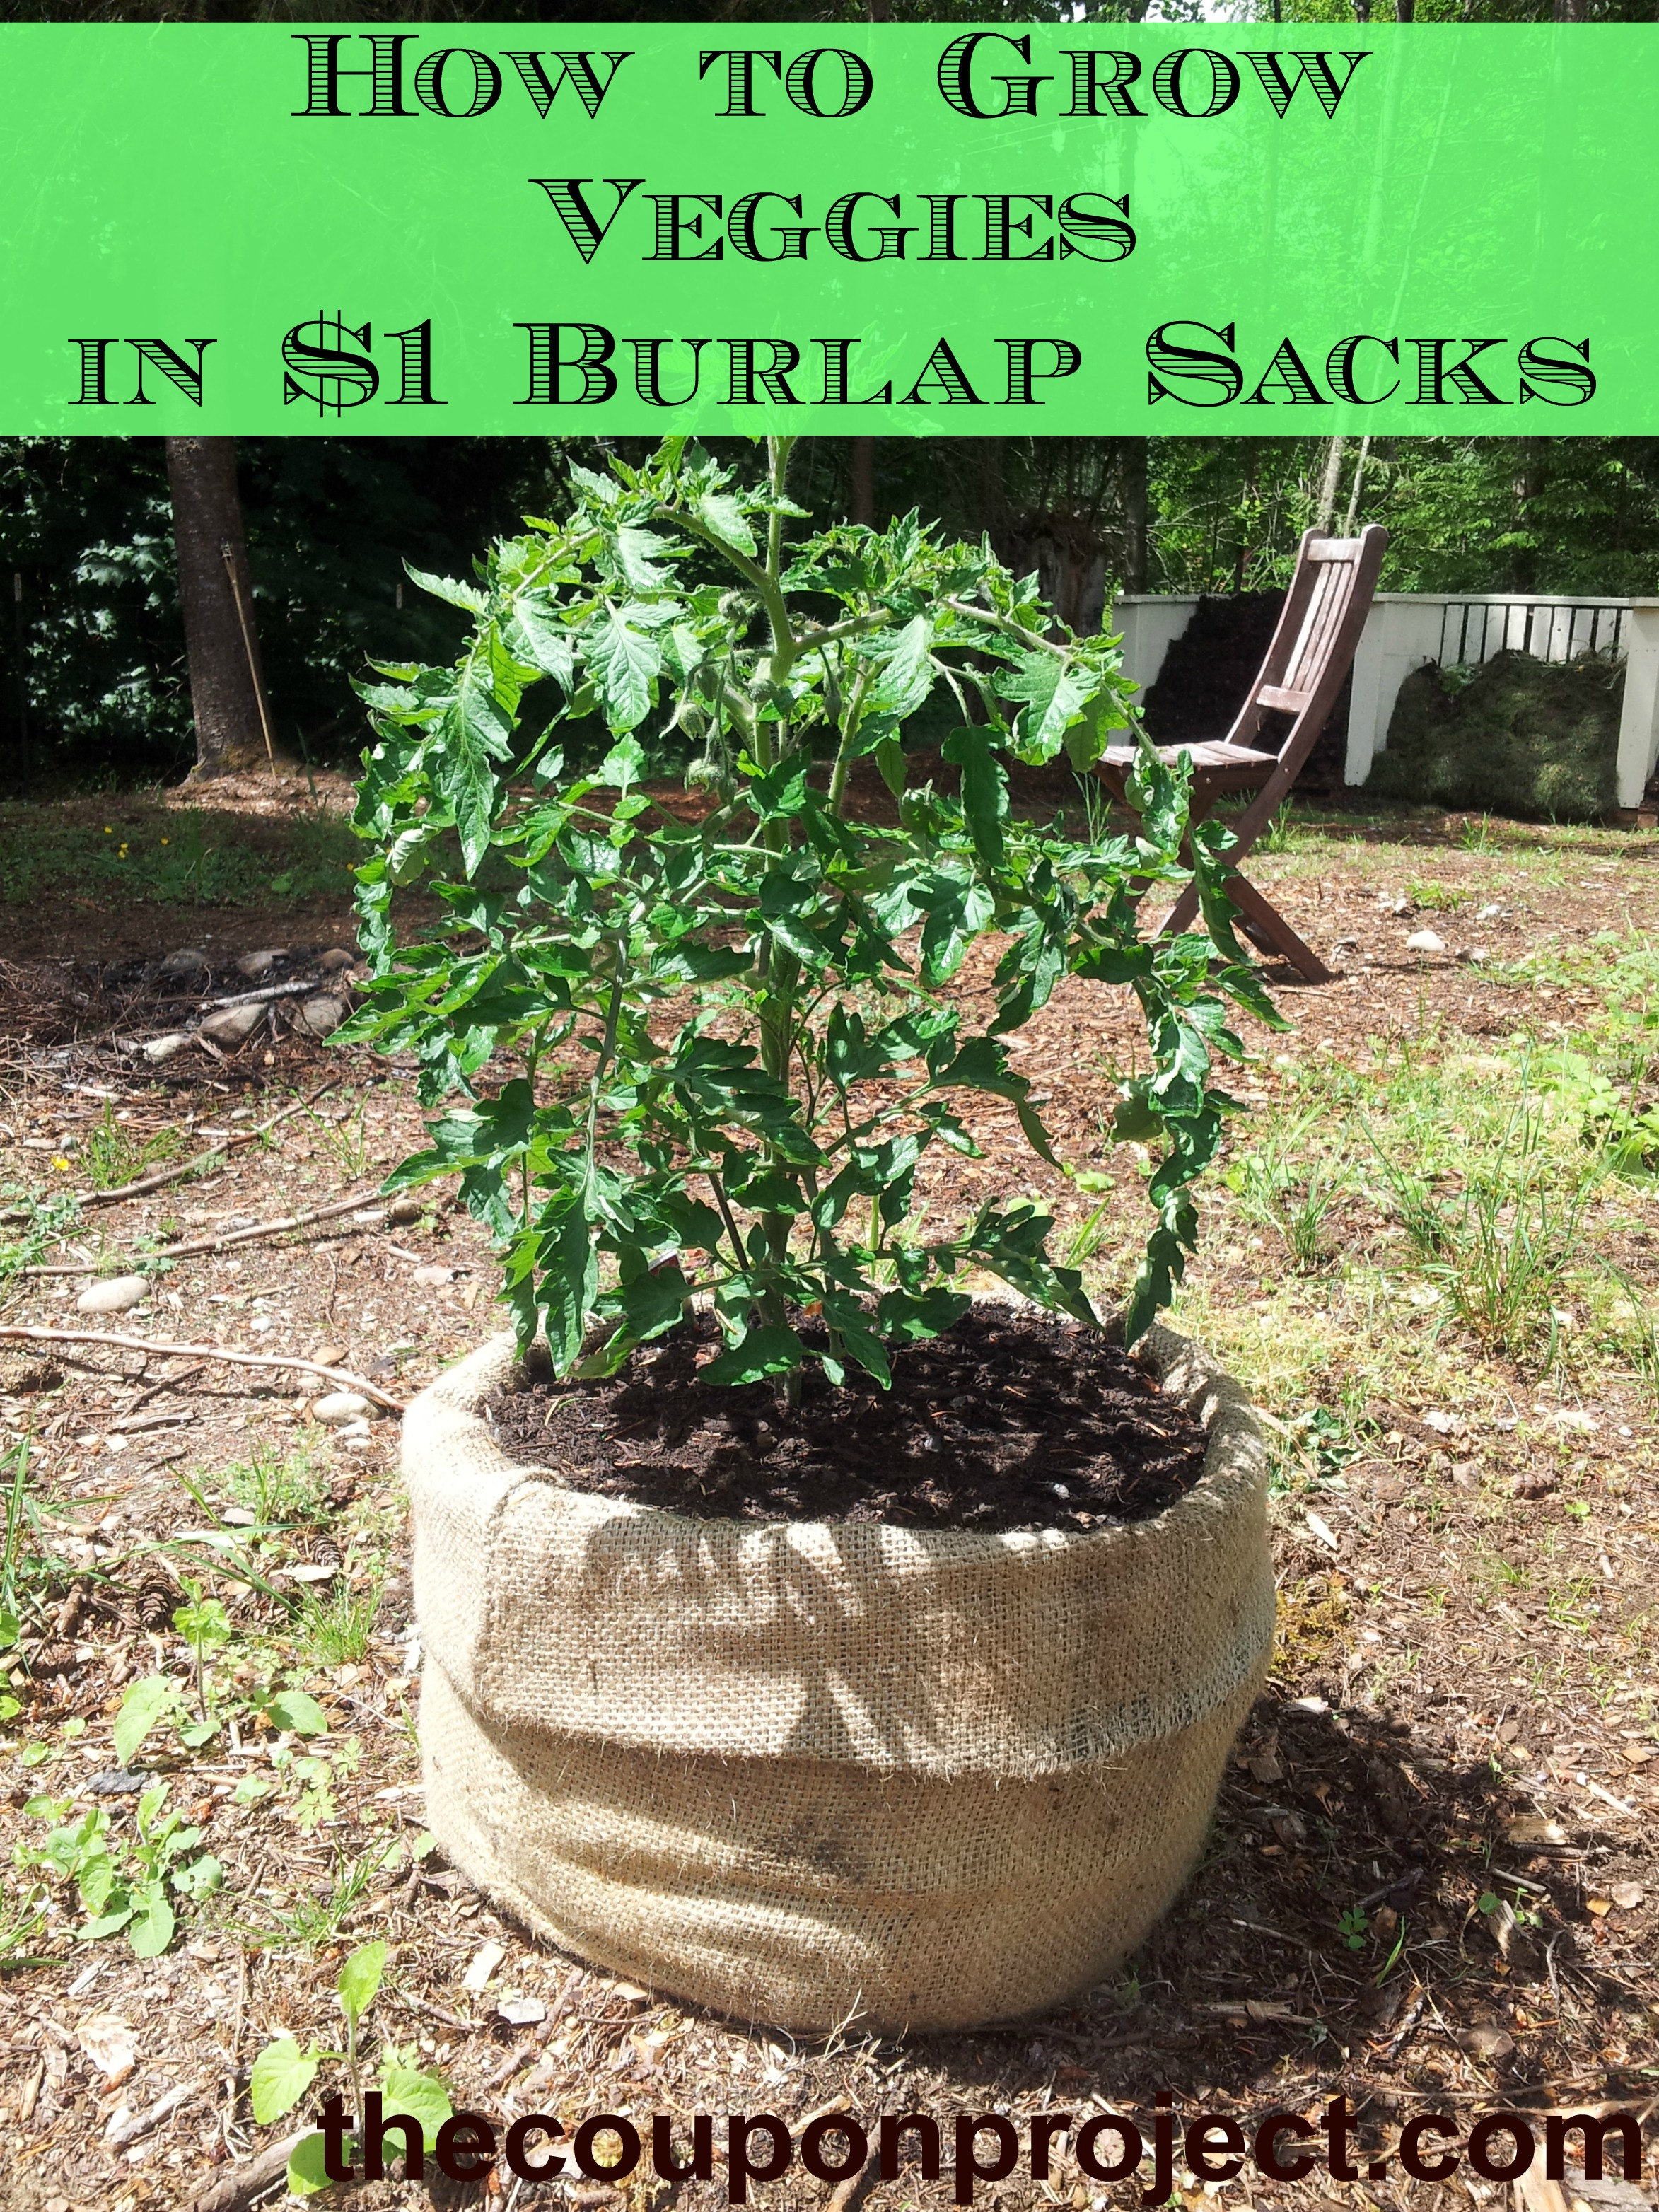 Frugal Gardening Growing Food In Burlap Sacks The Coupon Project